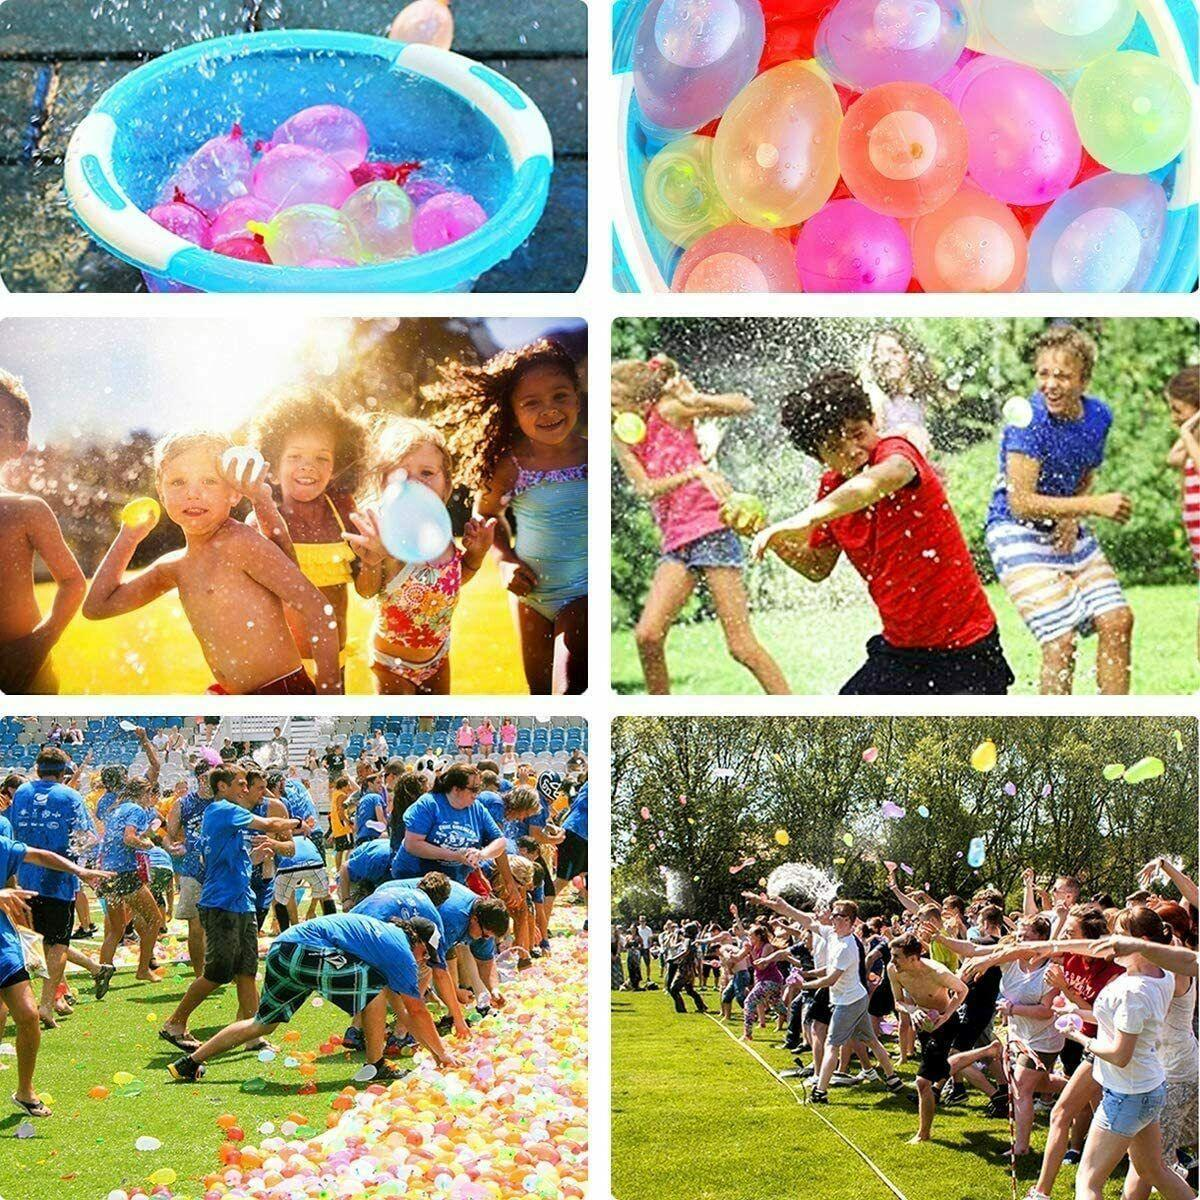 2020novelty toys magic water balloon cool summer gifts for cool kids for party water-battle with family or friends